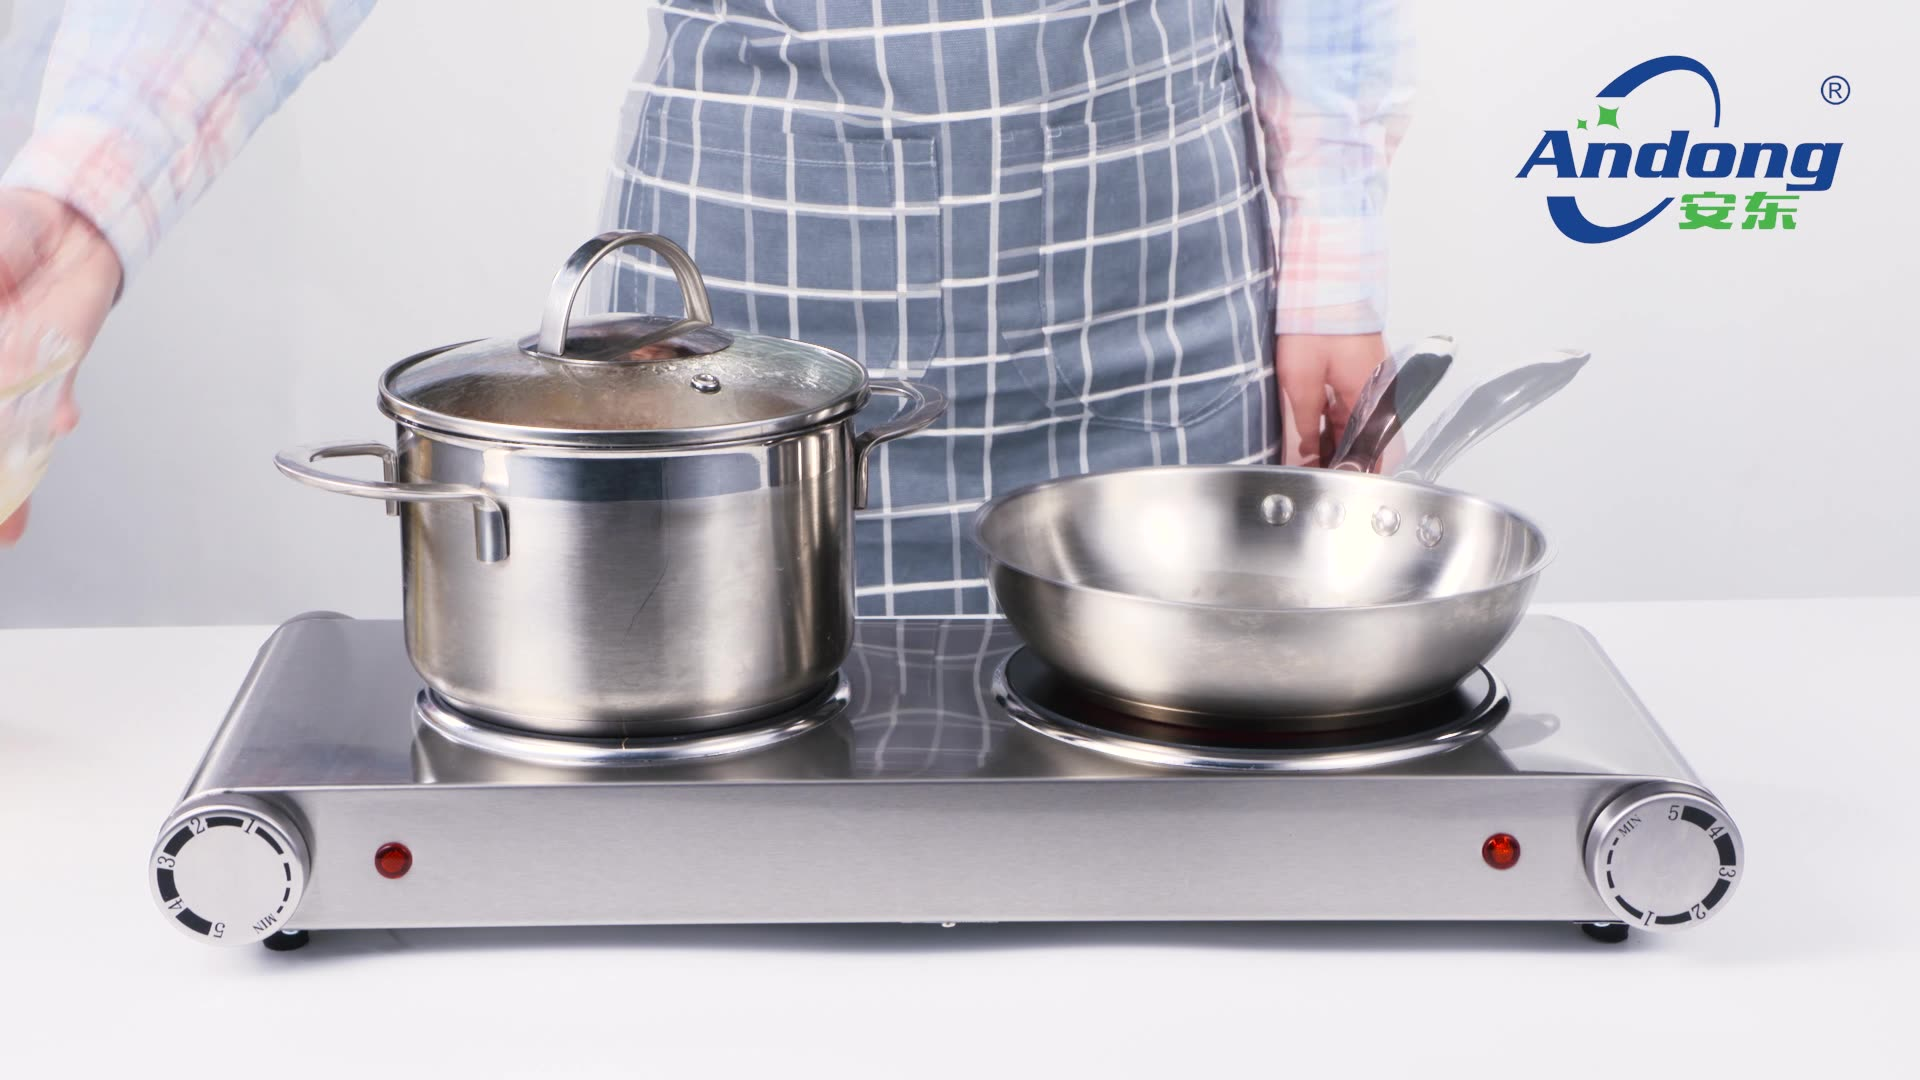 2500W Electric double burner cooking hot plate